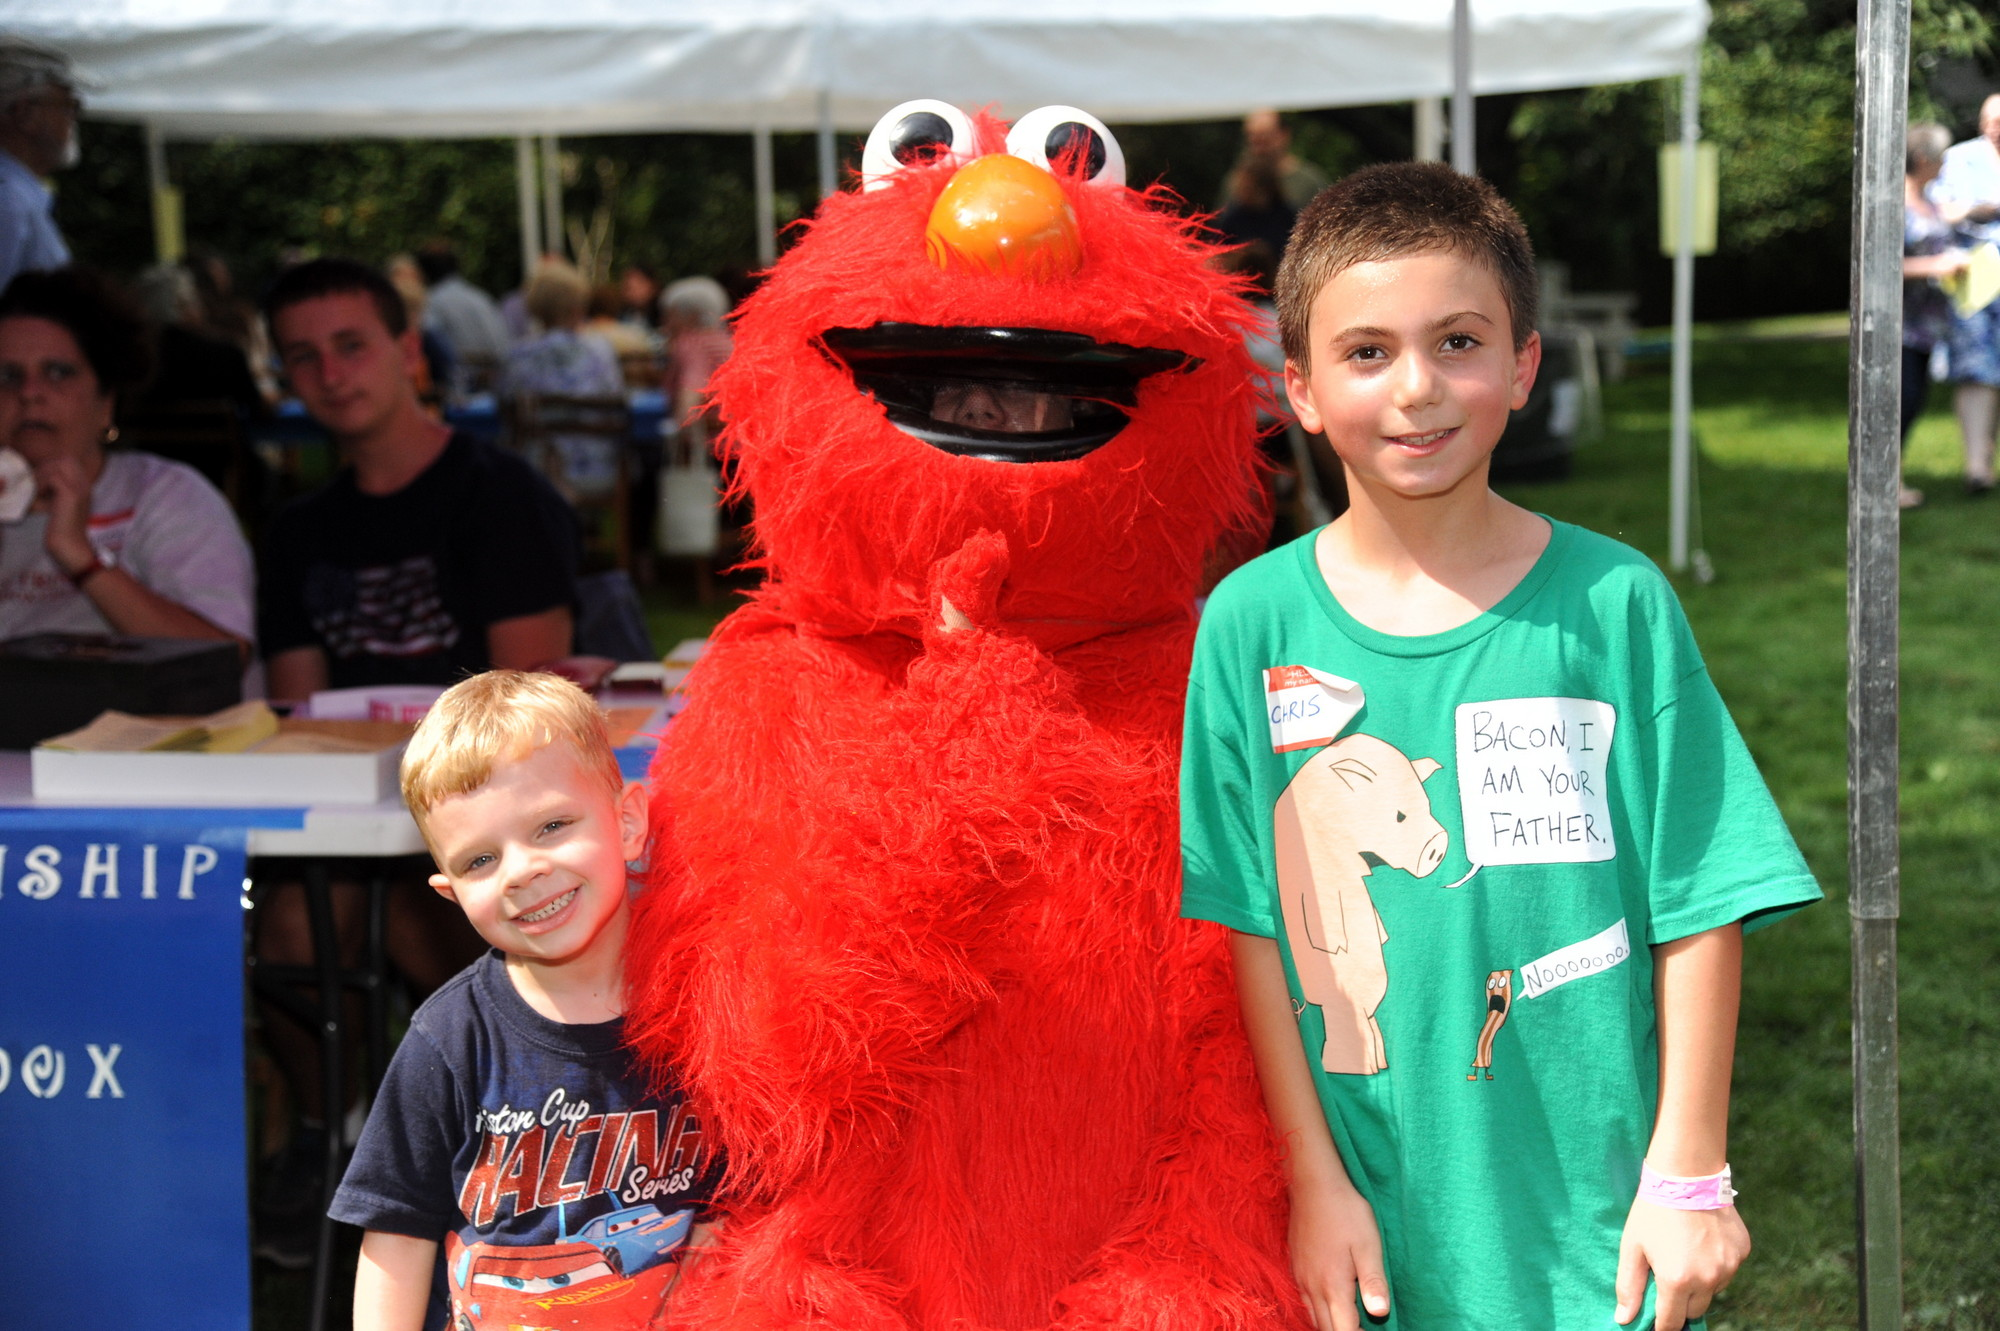 Colin Jenks, 4, left, and Christopher Ignatiou, 9, did not miss the opportunity to pose with Elmo during the Holy Trinity Orthodox Church's Faith, Food & Fellowship Festival last Saturday.